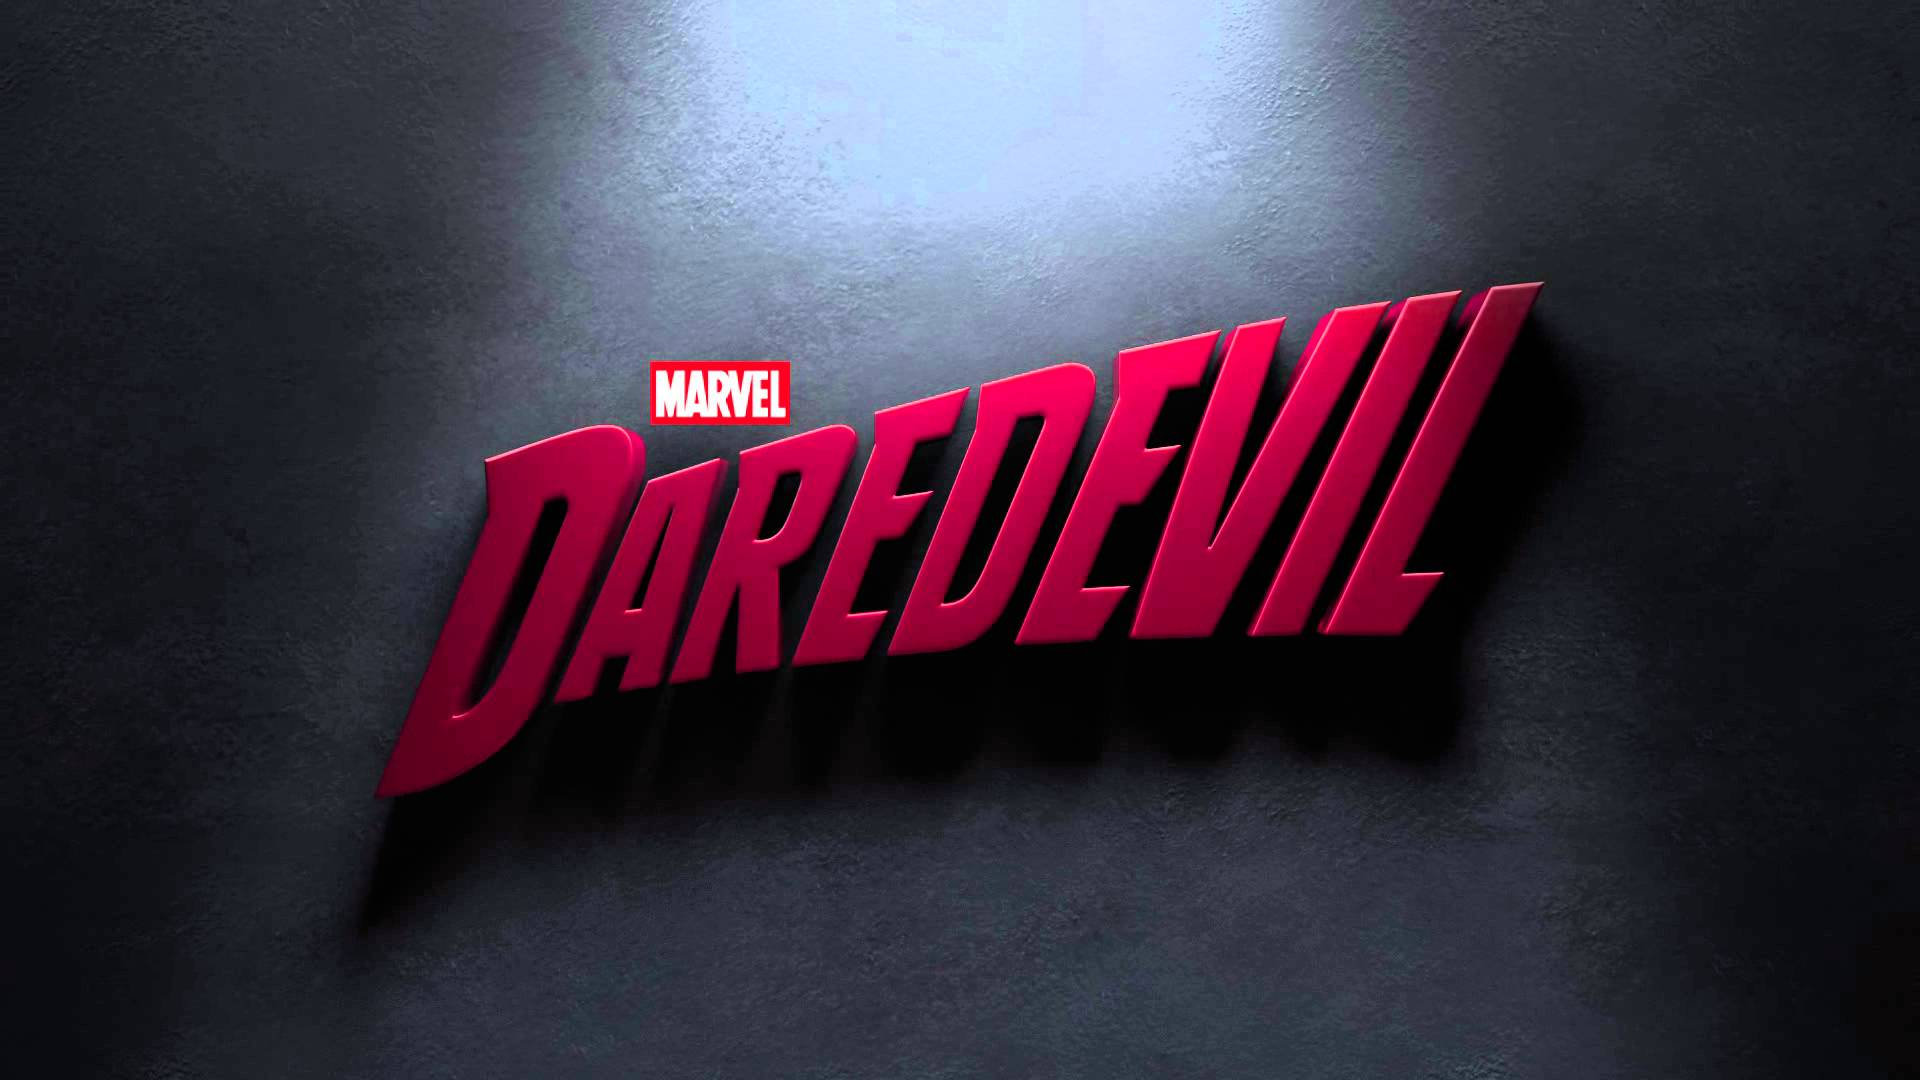 Daredevil 9 Marvel And Netflix Announce Second Season Of Daredevil